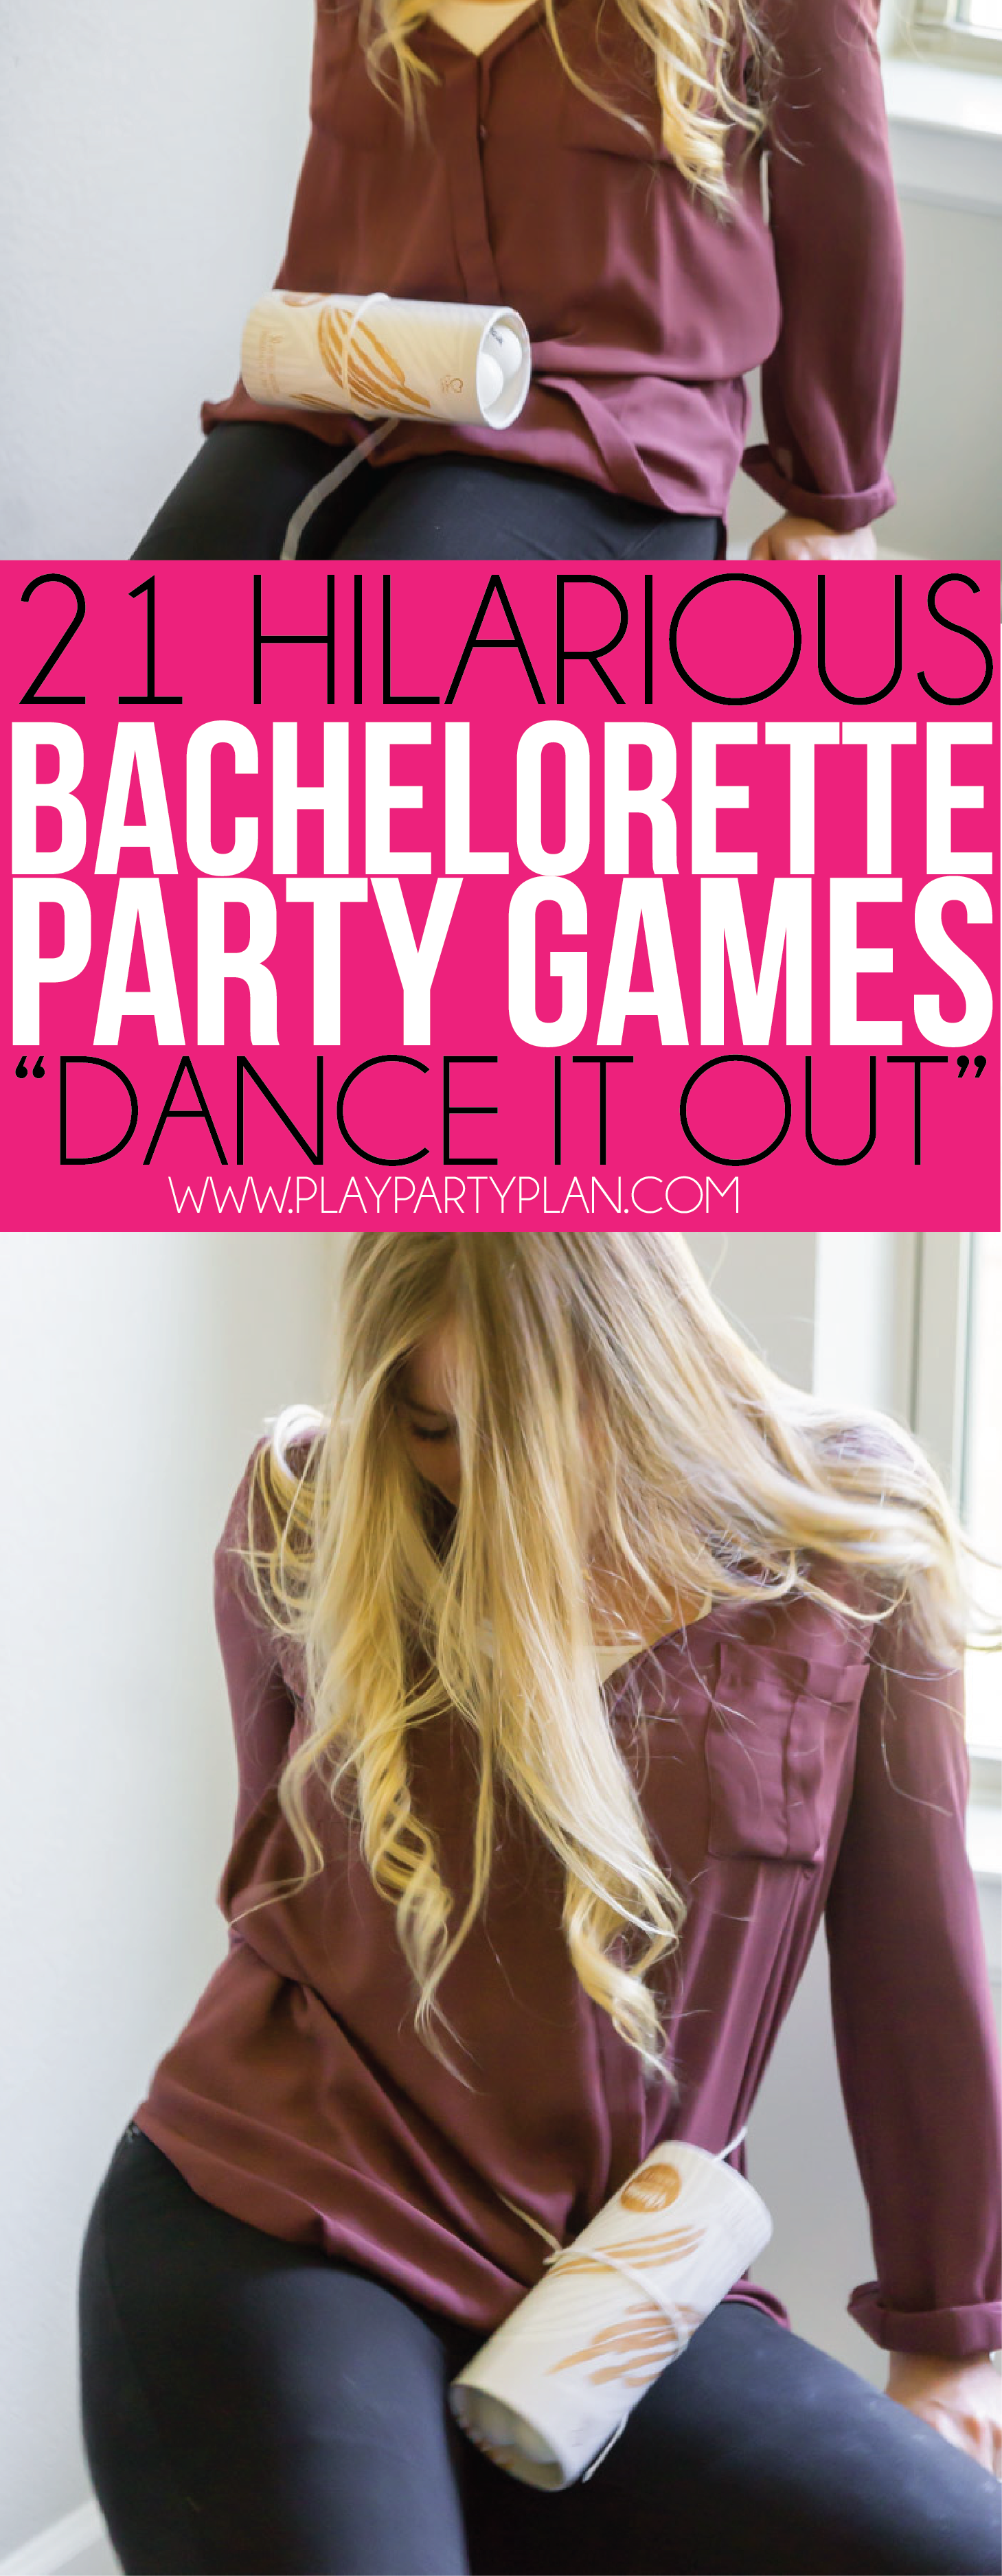 This lap dance game is one of the best bachelorette party games